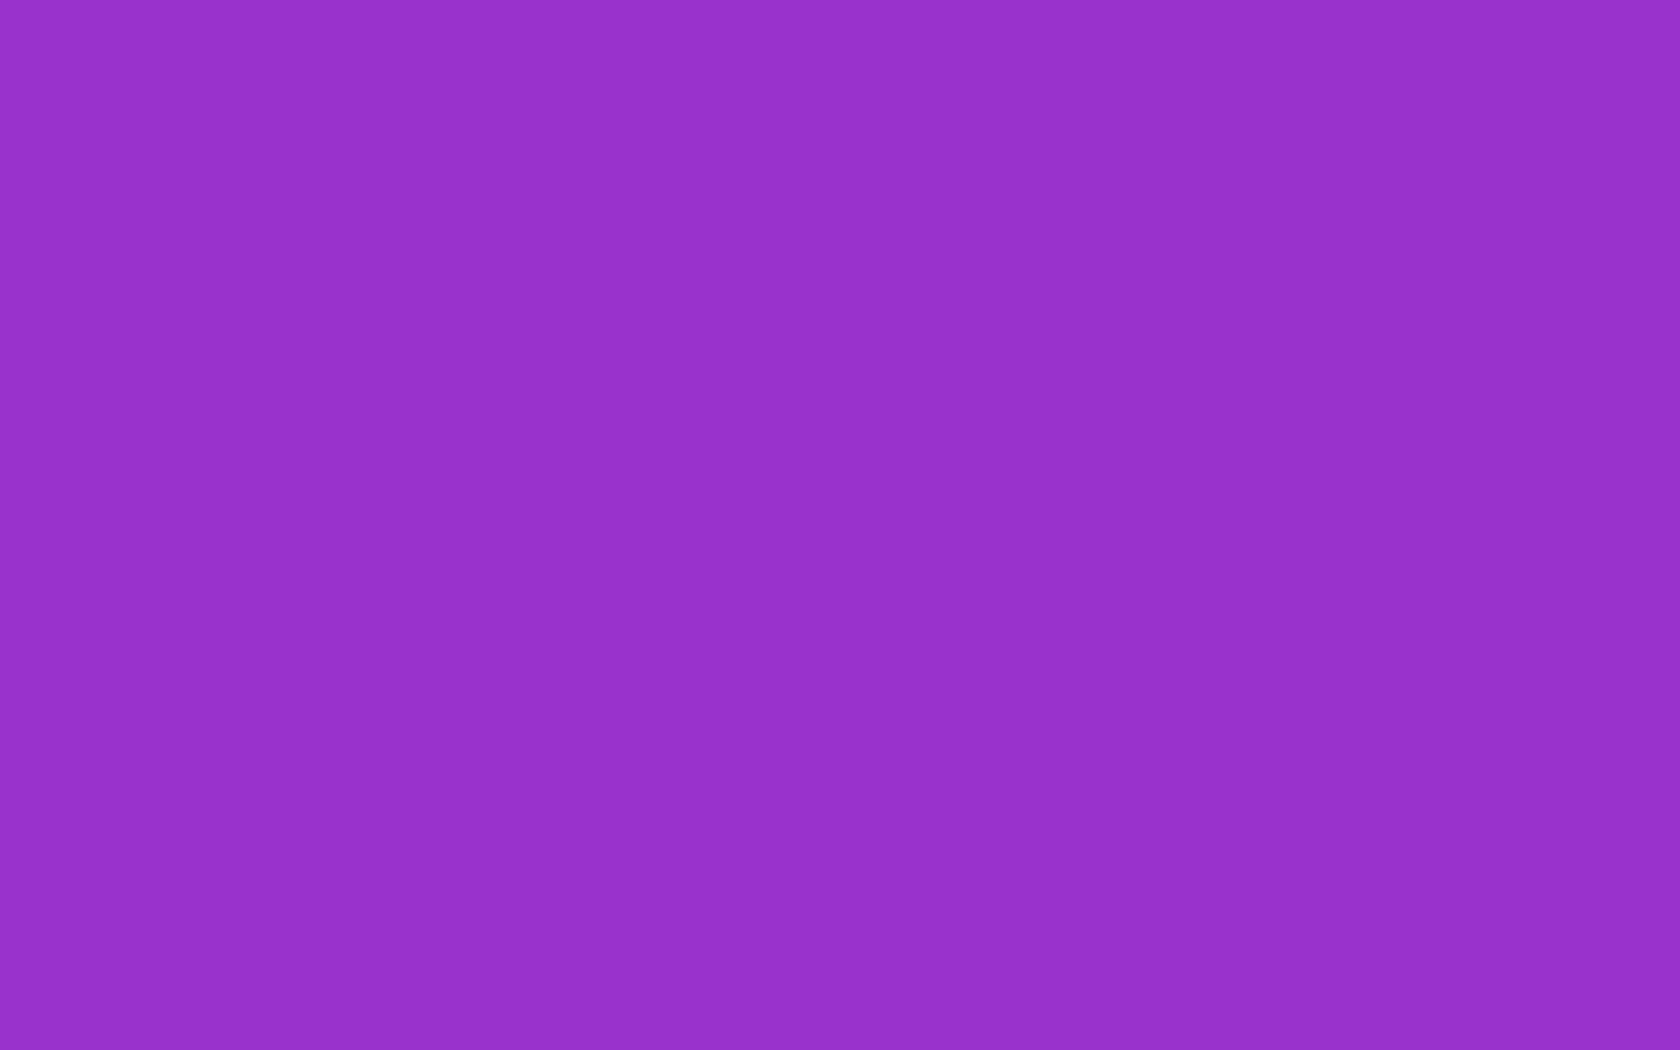 1680x1050 Dark Orchid Solid Color Background